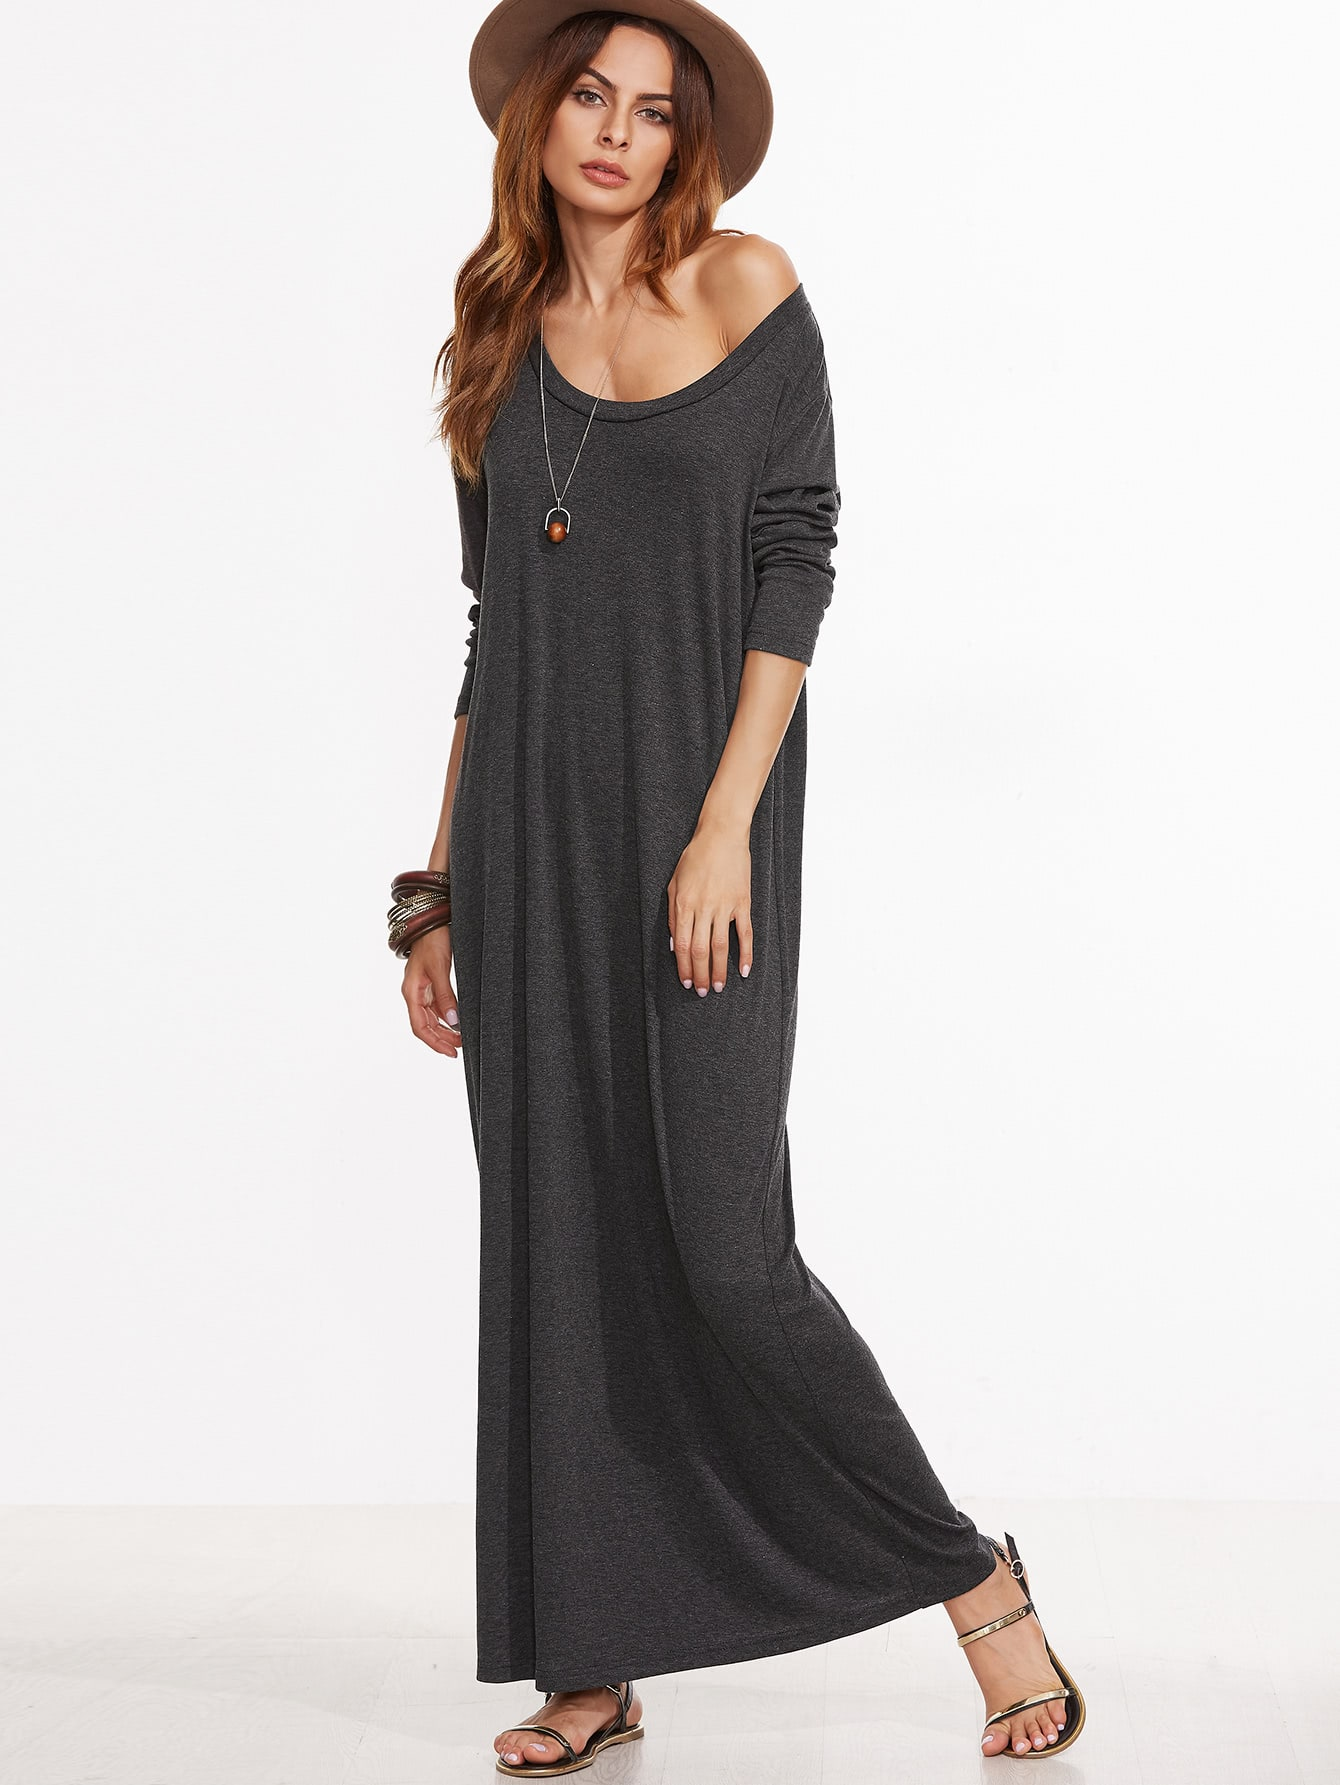 Scoop Neck Full Length Dress